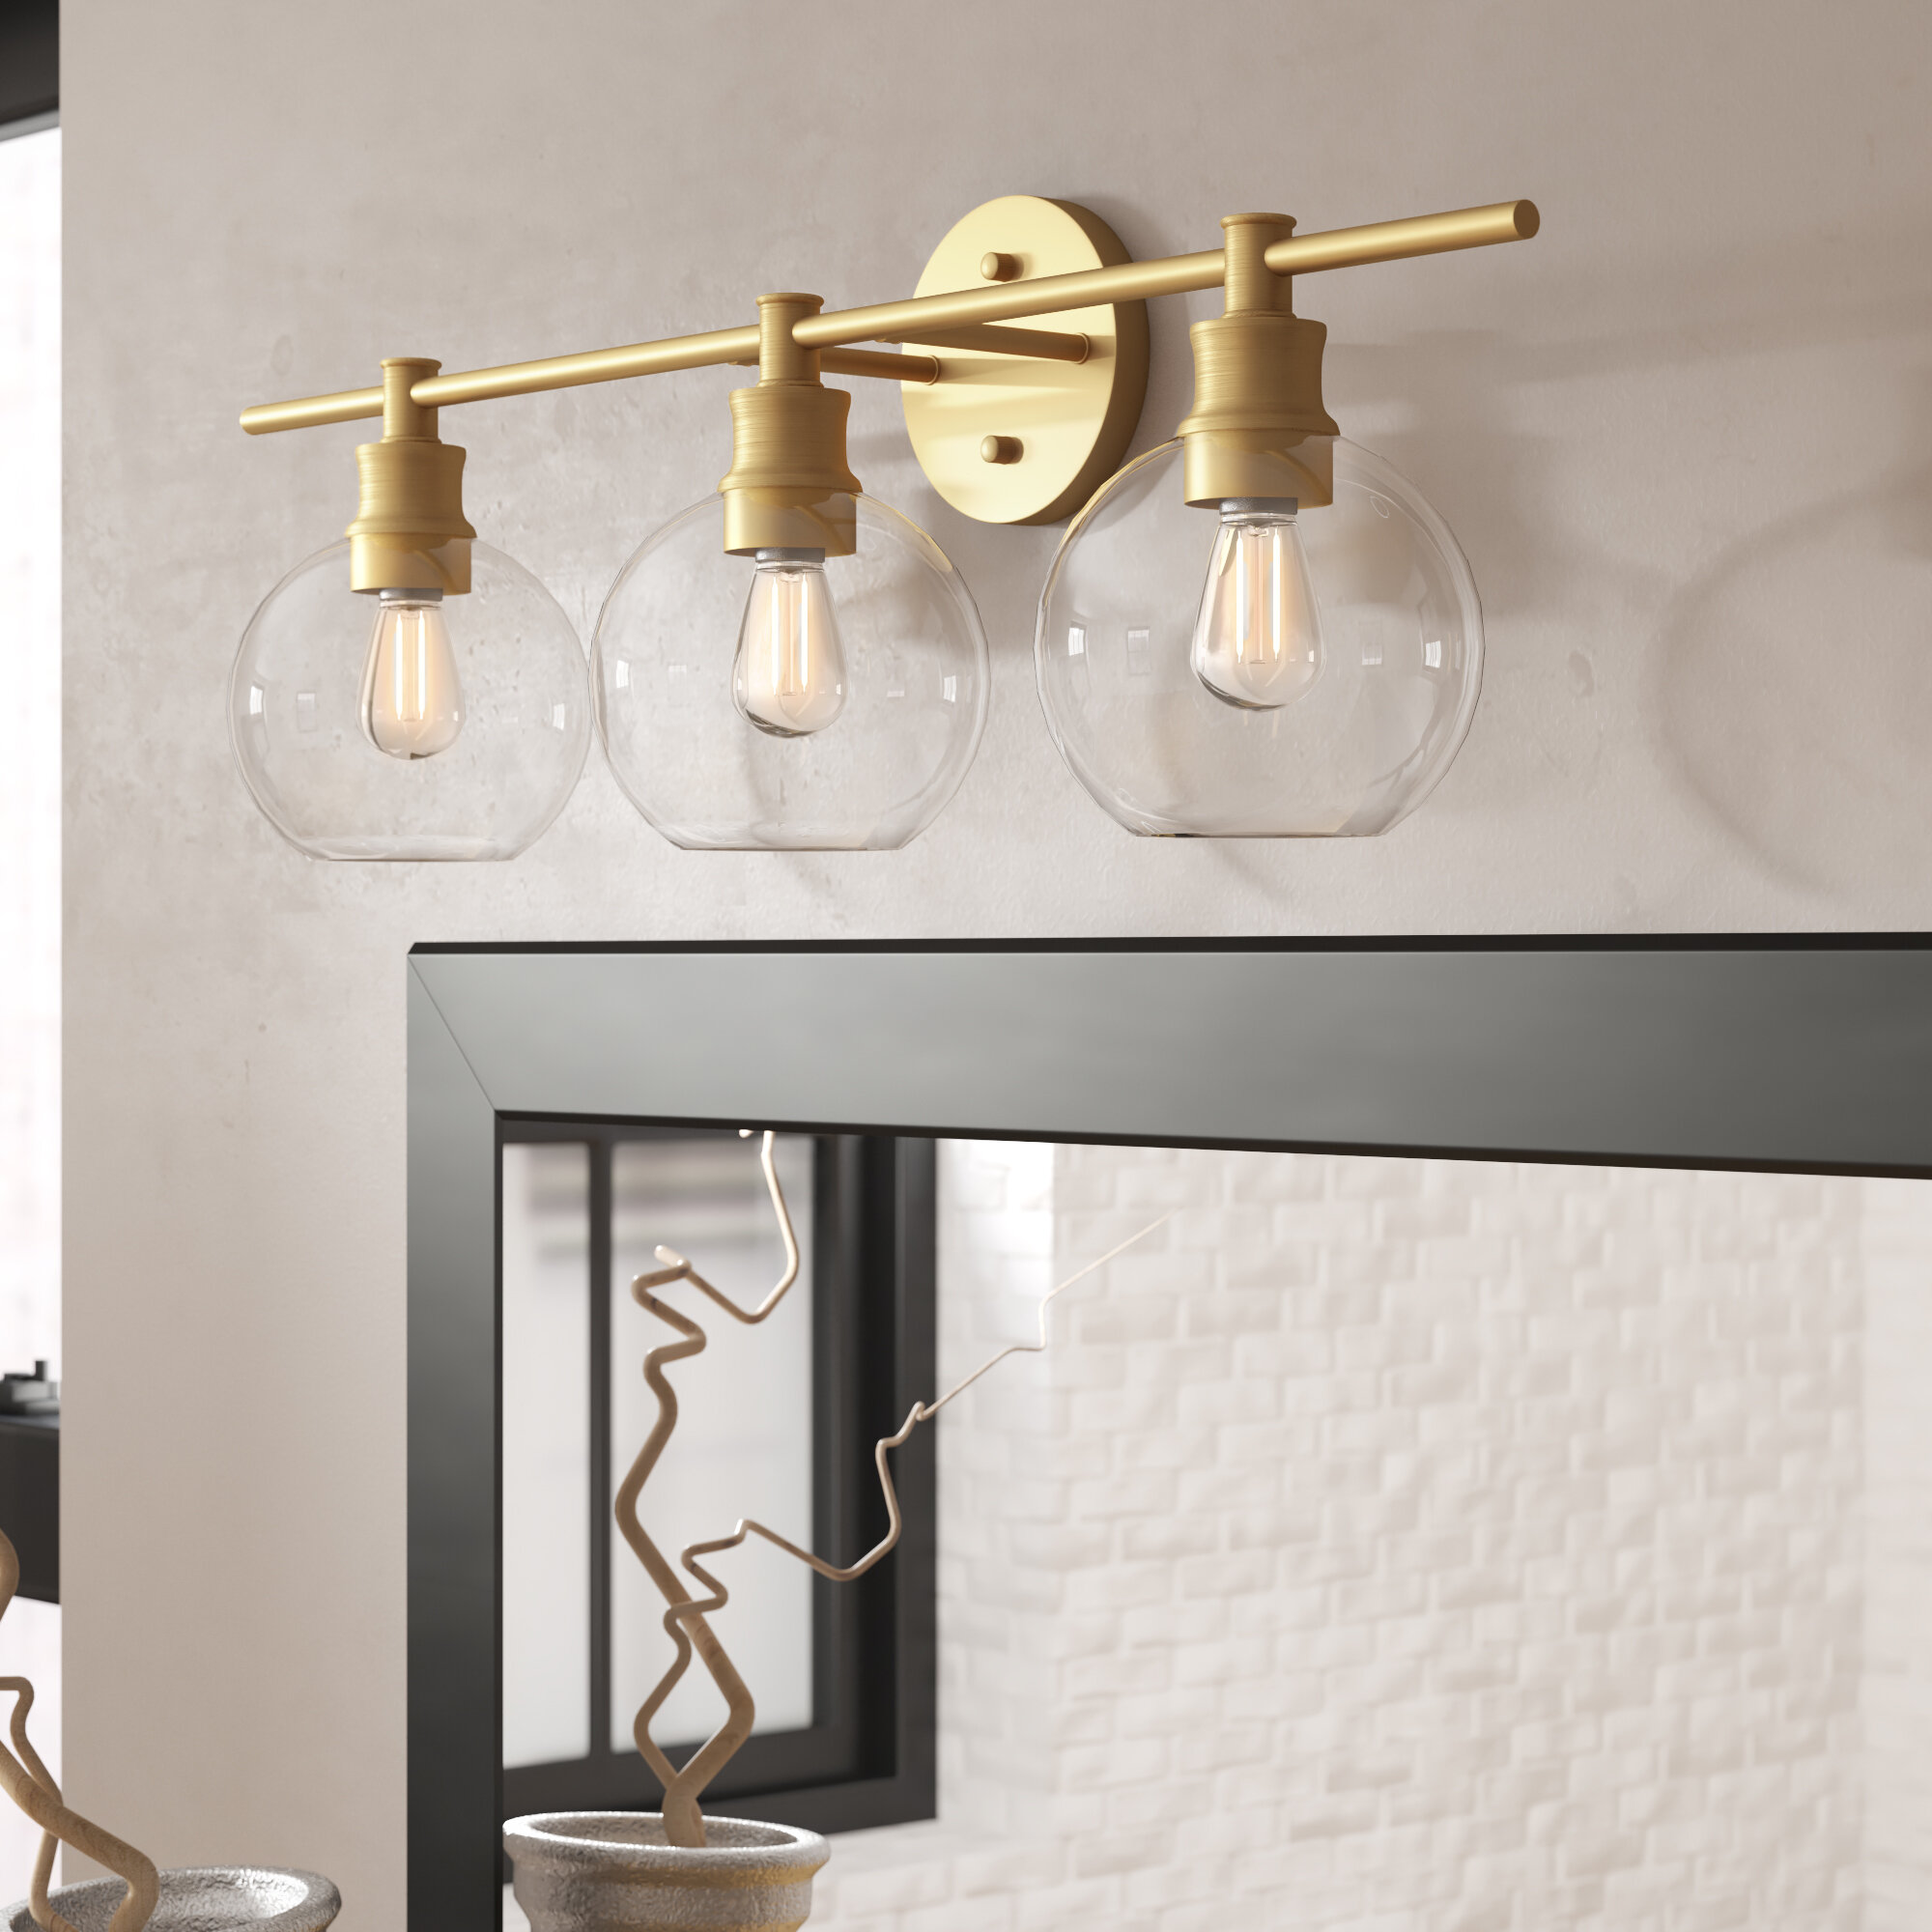 Hashtag Home Drinkard 3 Light Vanity Light Reviews Wayfair